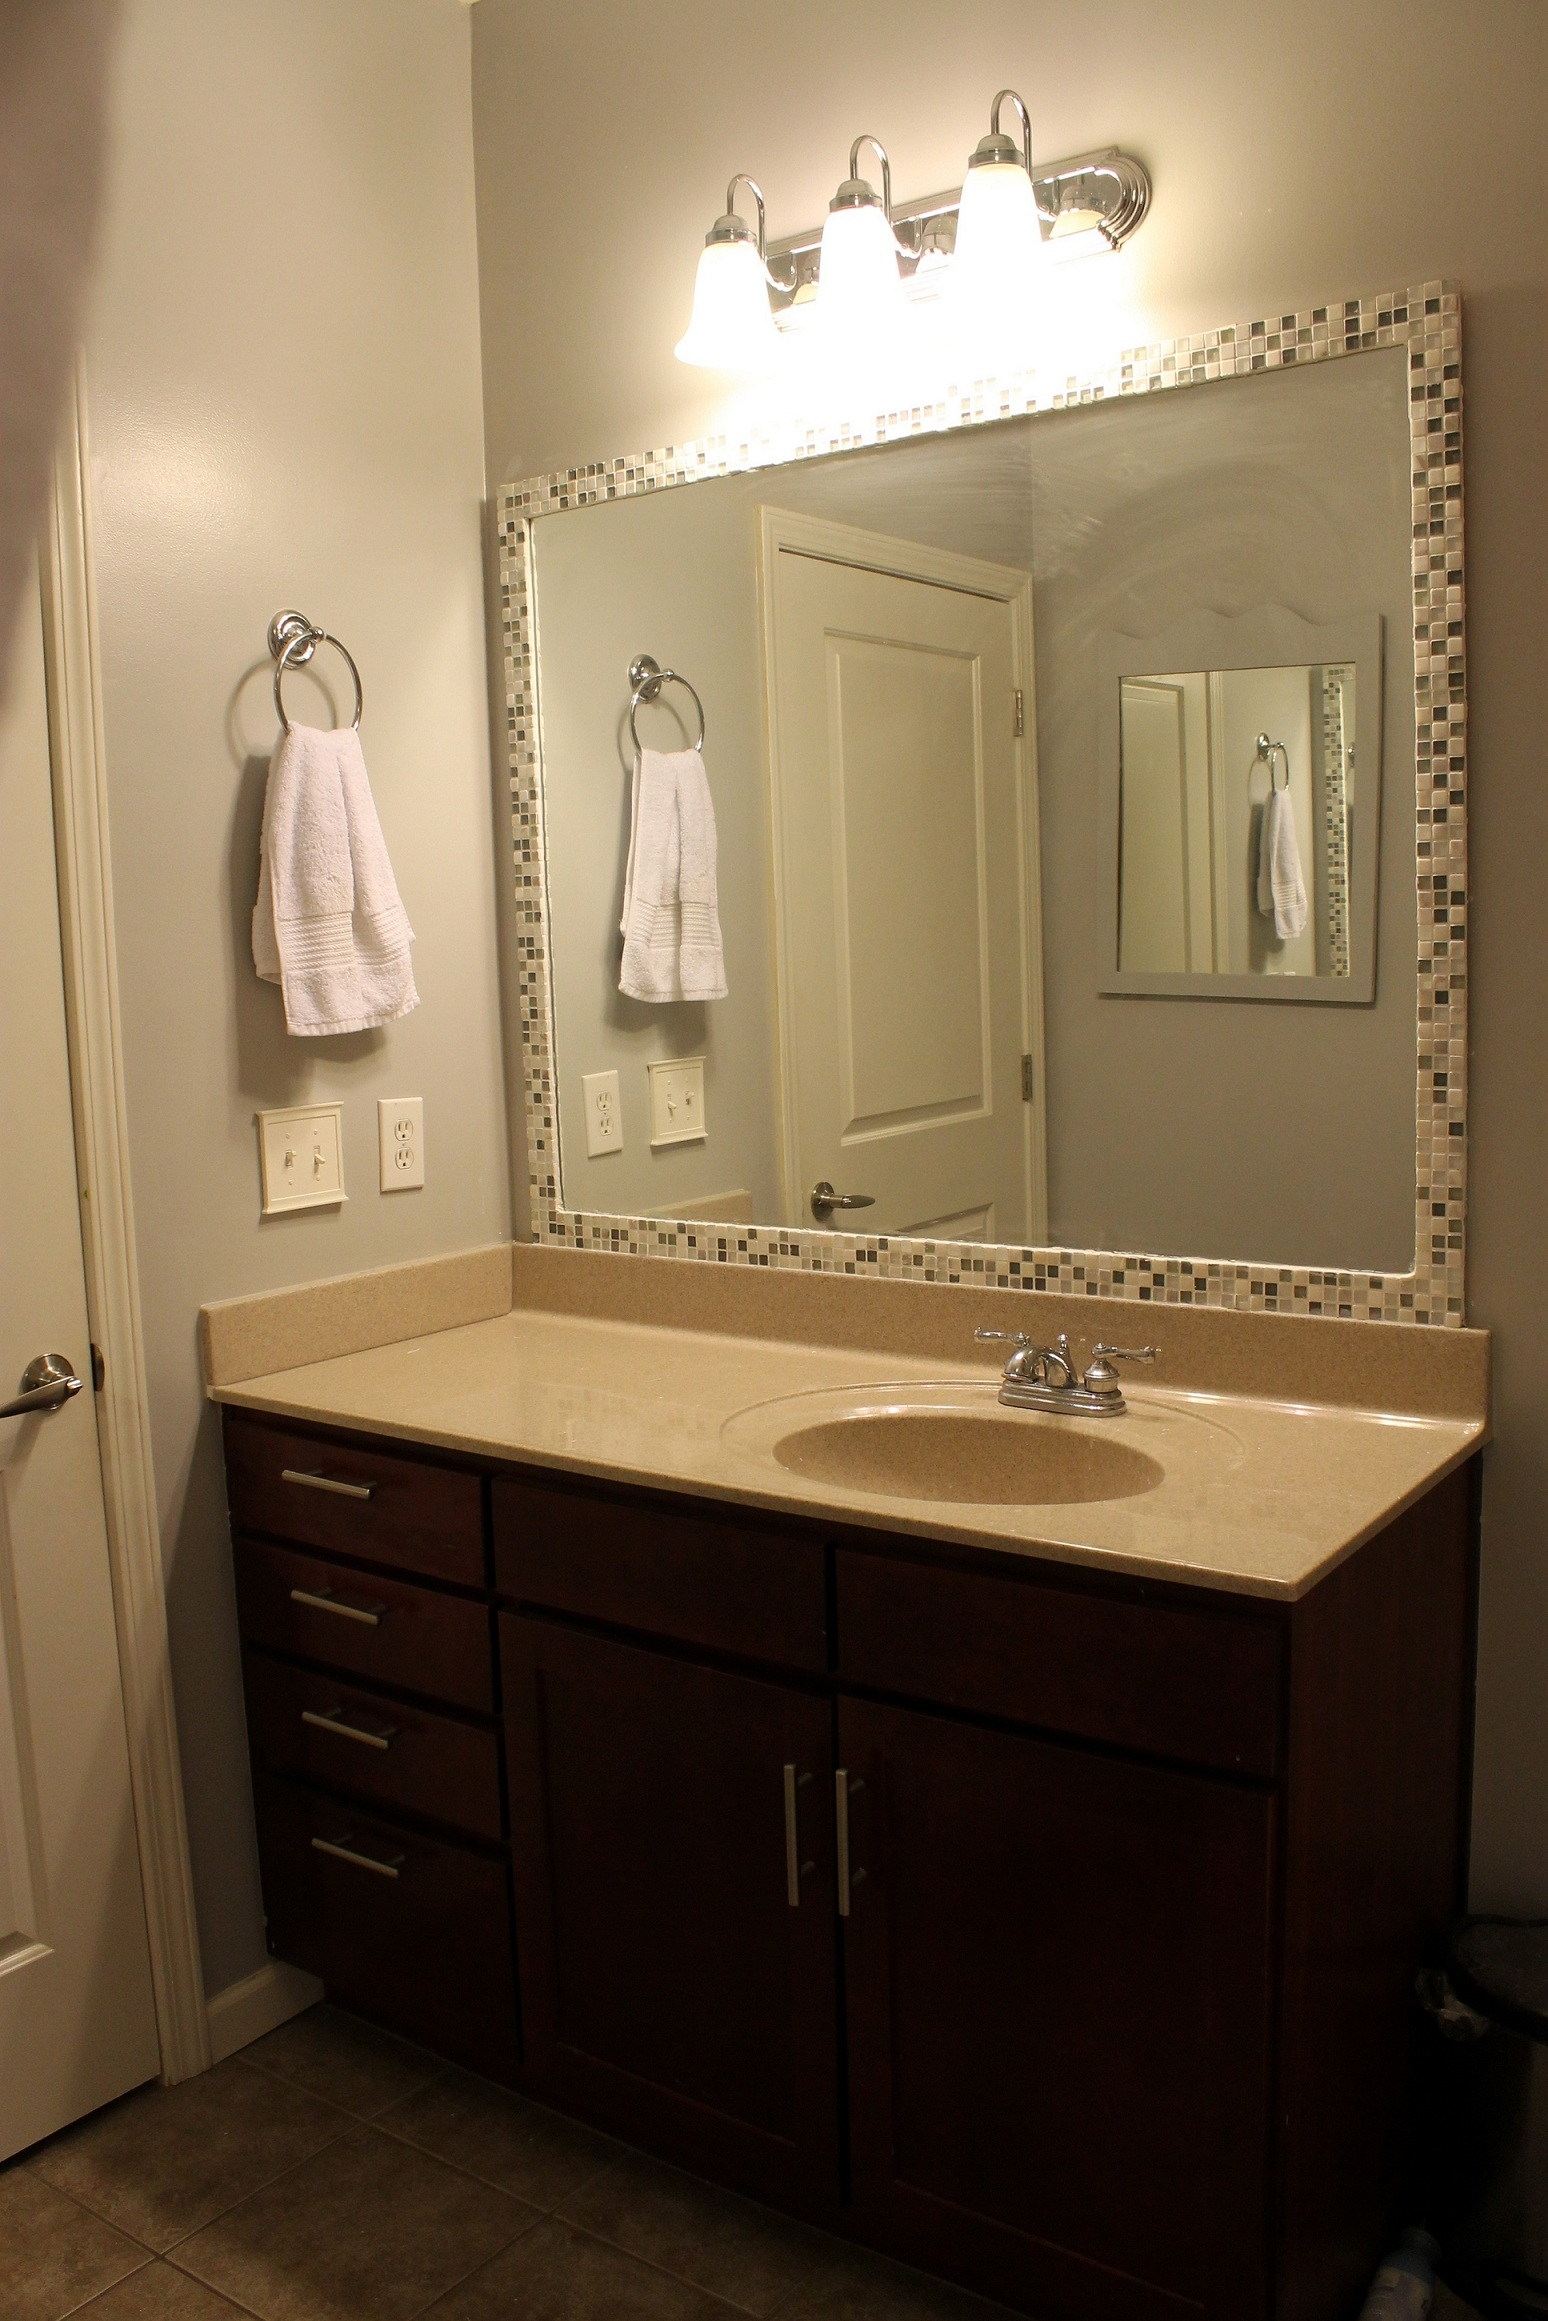 Bathroom Elegant Bathroom Decor With Large Framed Bathroom With Large Frameless Bathroom Mirror (View 8 of 15)